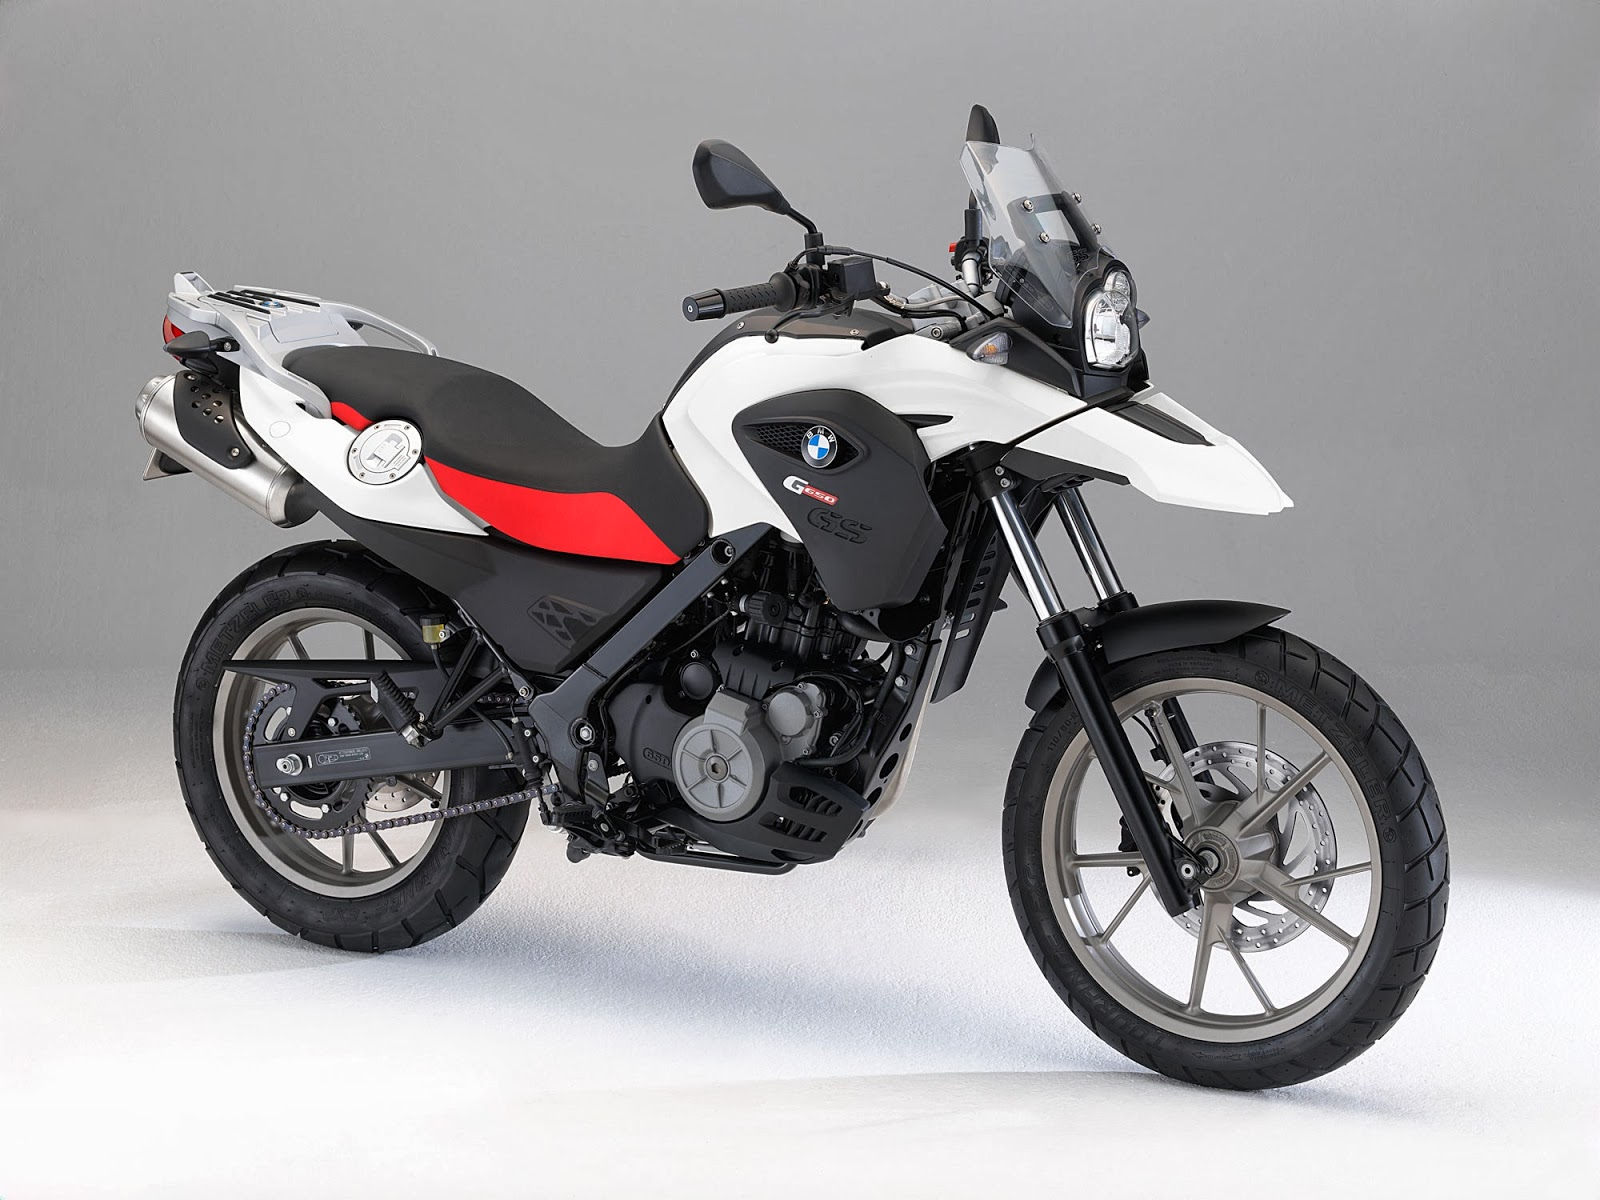 bmw g 650 gs wallpaper just welcome to automotive. Black Bedroom Furniture Sets. Home Design Ideas